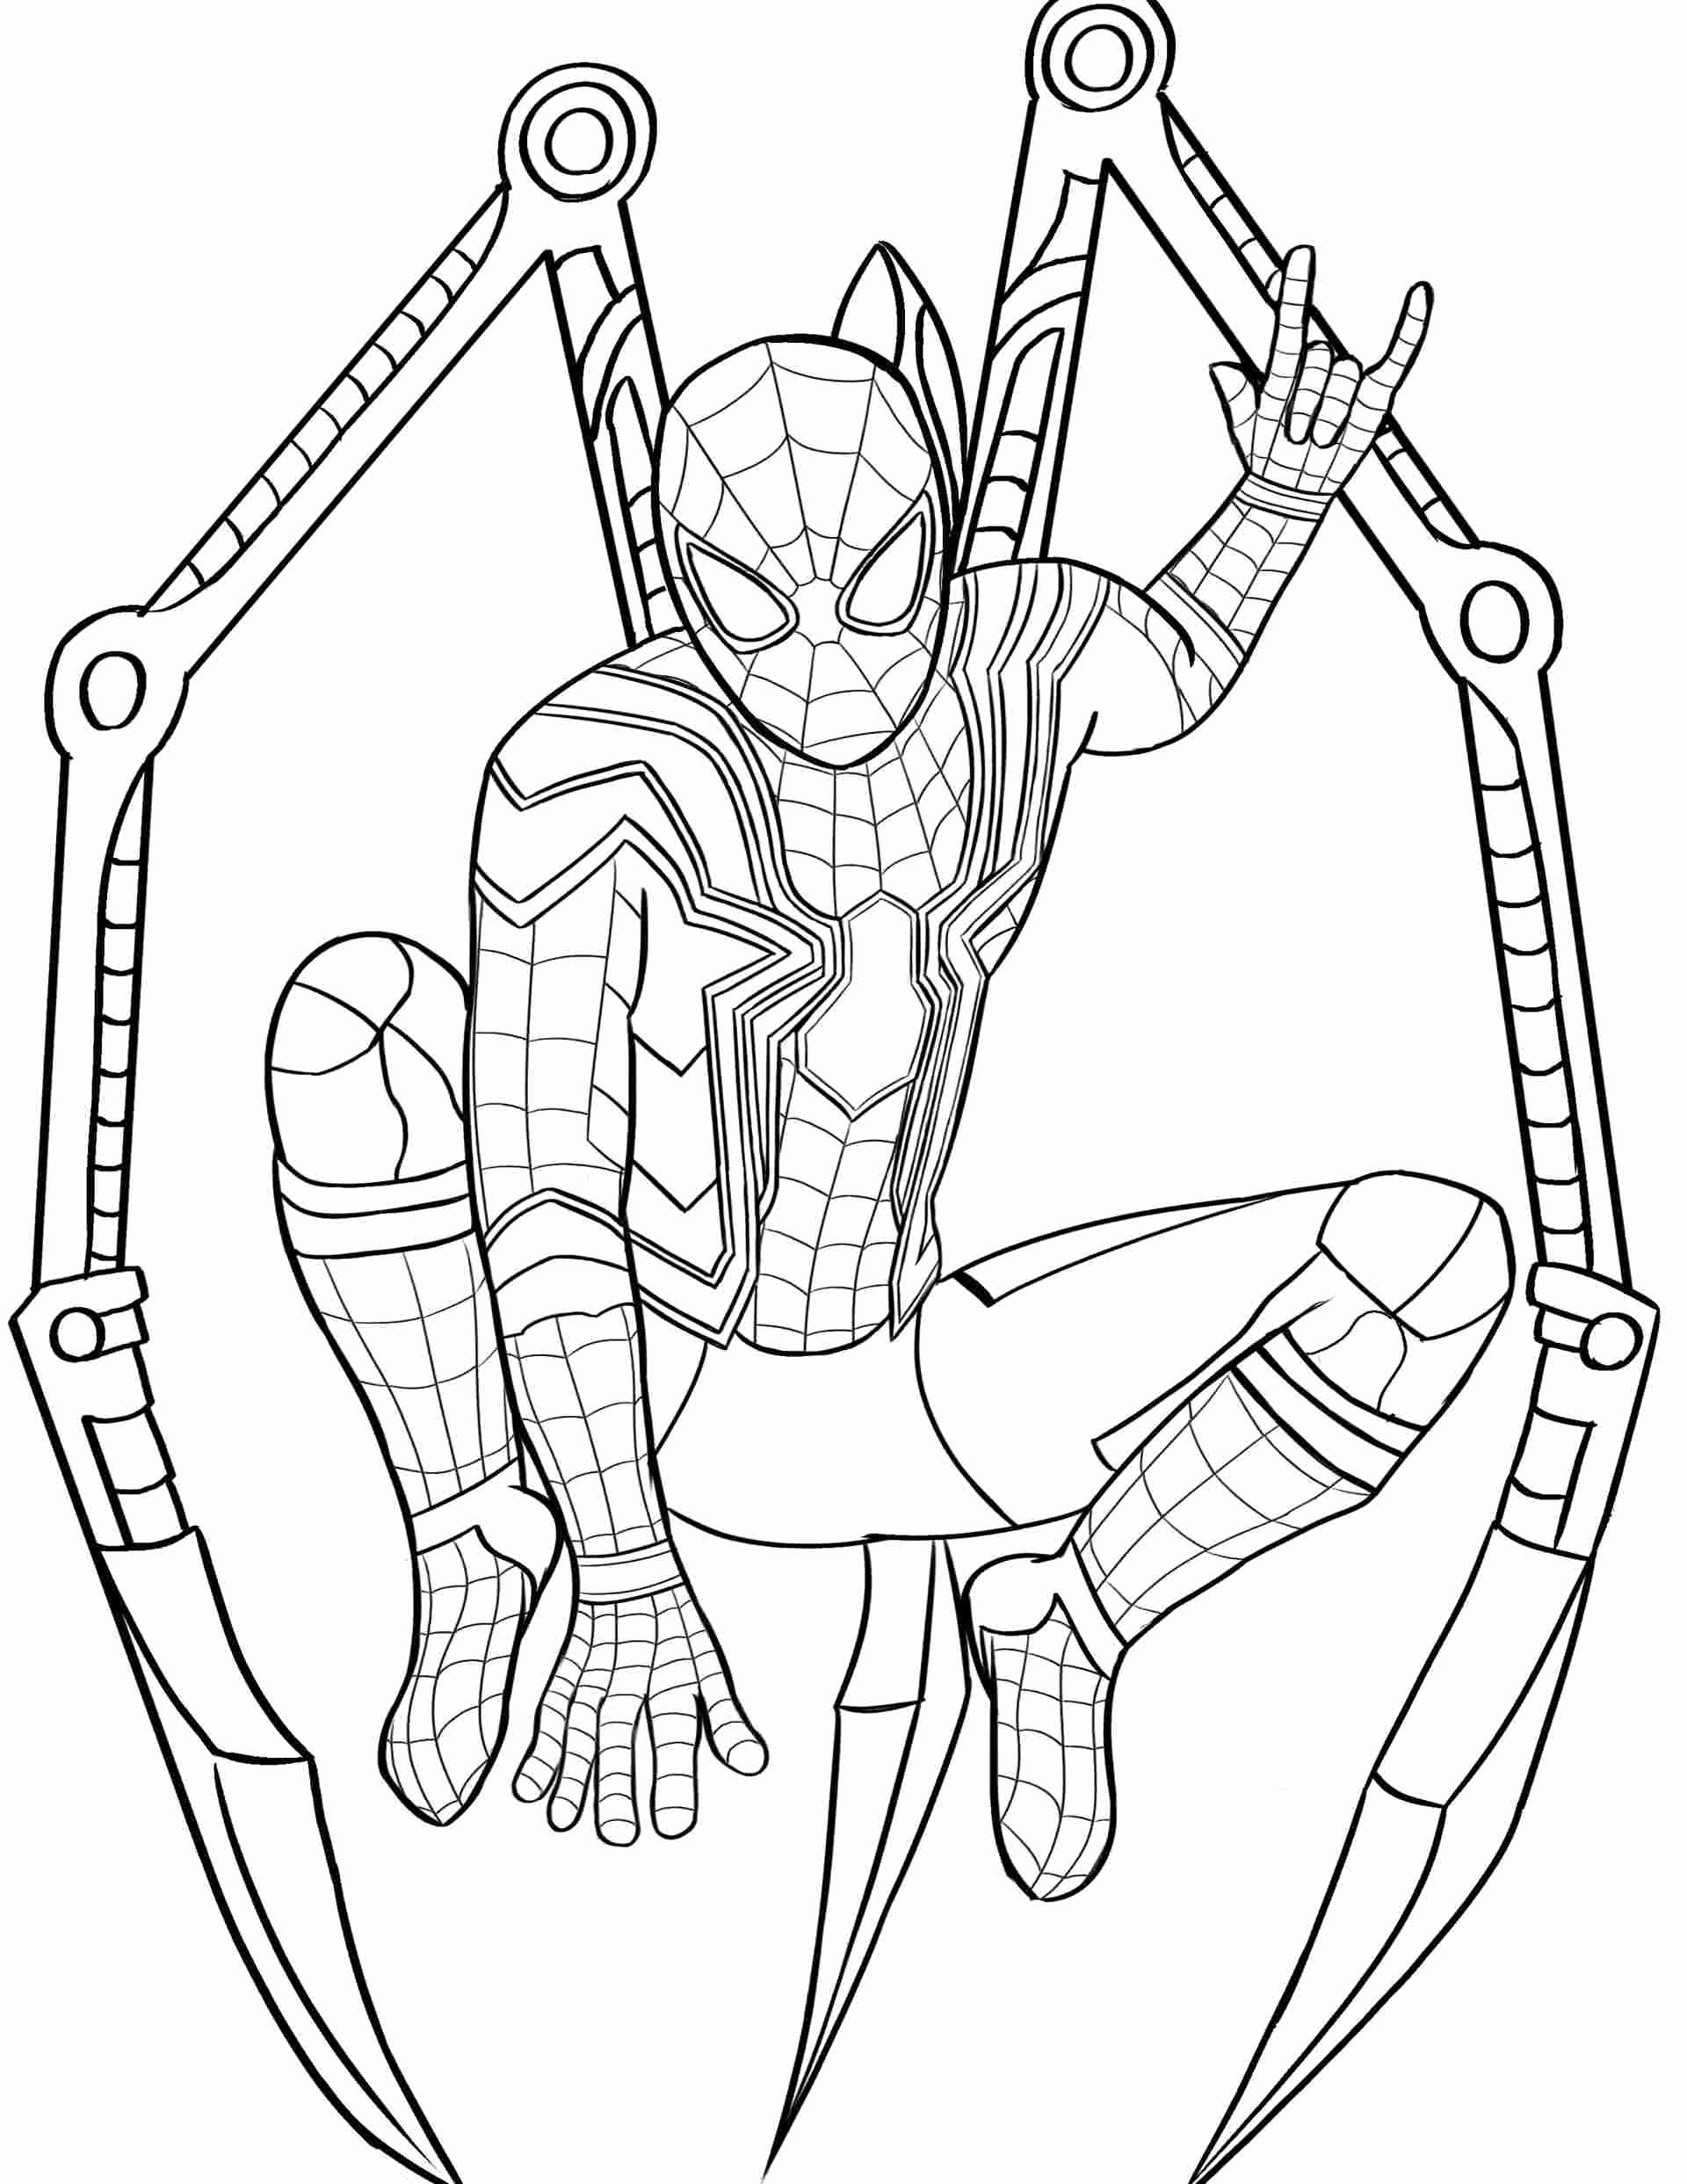 10 Spiderman Coloring Avengers Coloring Pages Avengers Coloring Spiderman Coloring